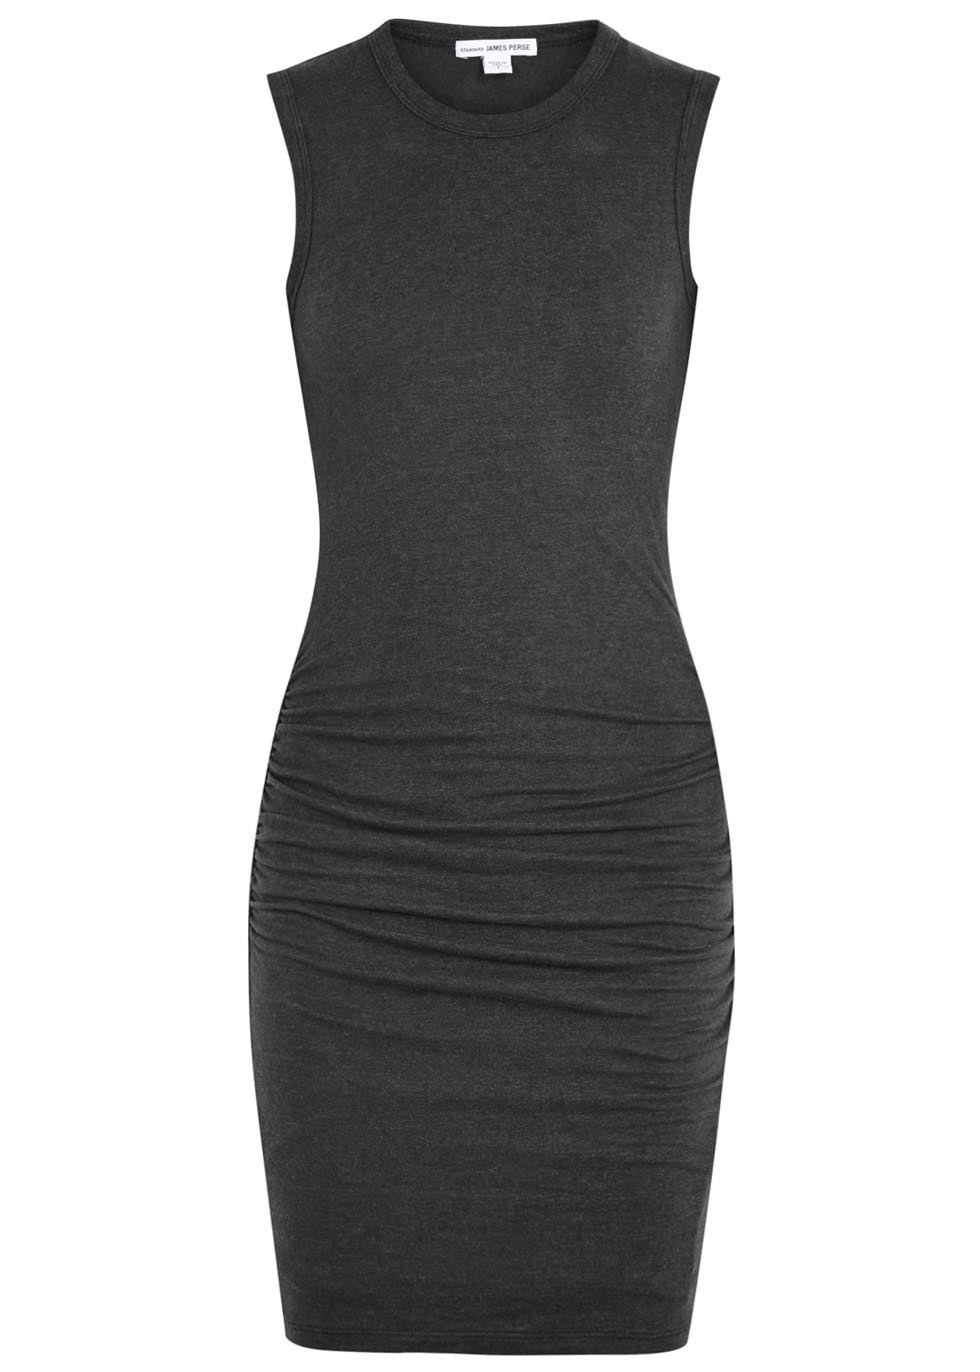 Ruched Charcoal Jersey Dress - length: mid thigh; fit: tight; pattern: plain; sleeve style: sleeveless; style: bodycon; predominant colour: charcoal; occasions: evening; fibres: cotton - mix; neckline: crew; hip detail: adds bulk at the hips; sleeve length: sleeveless; pattern type: fabric; pattern size: standard; texture group: jersey - stretchy/drapey; season: s/s 2016; wardrobe: event